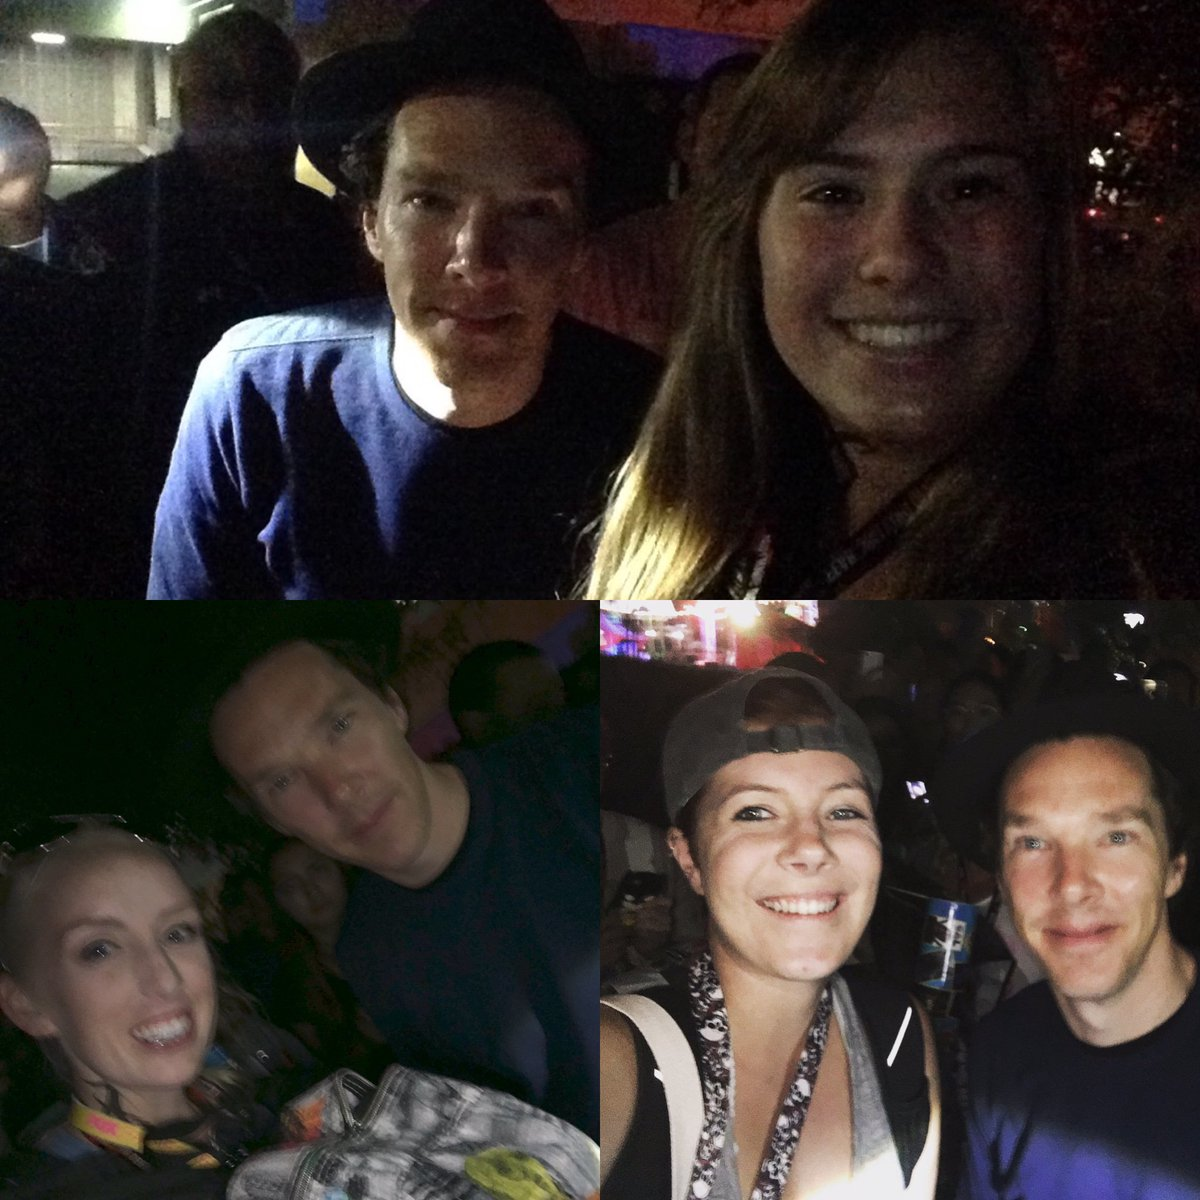 Benedict Cumberbatch decided to give everyone in the #HallH line on Friday night! #comiccon #sdcc2016 #sherlock https://t.co/f8eZa2sqau